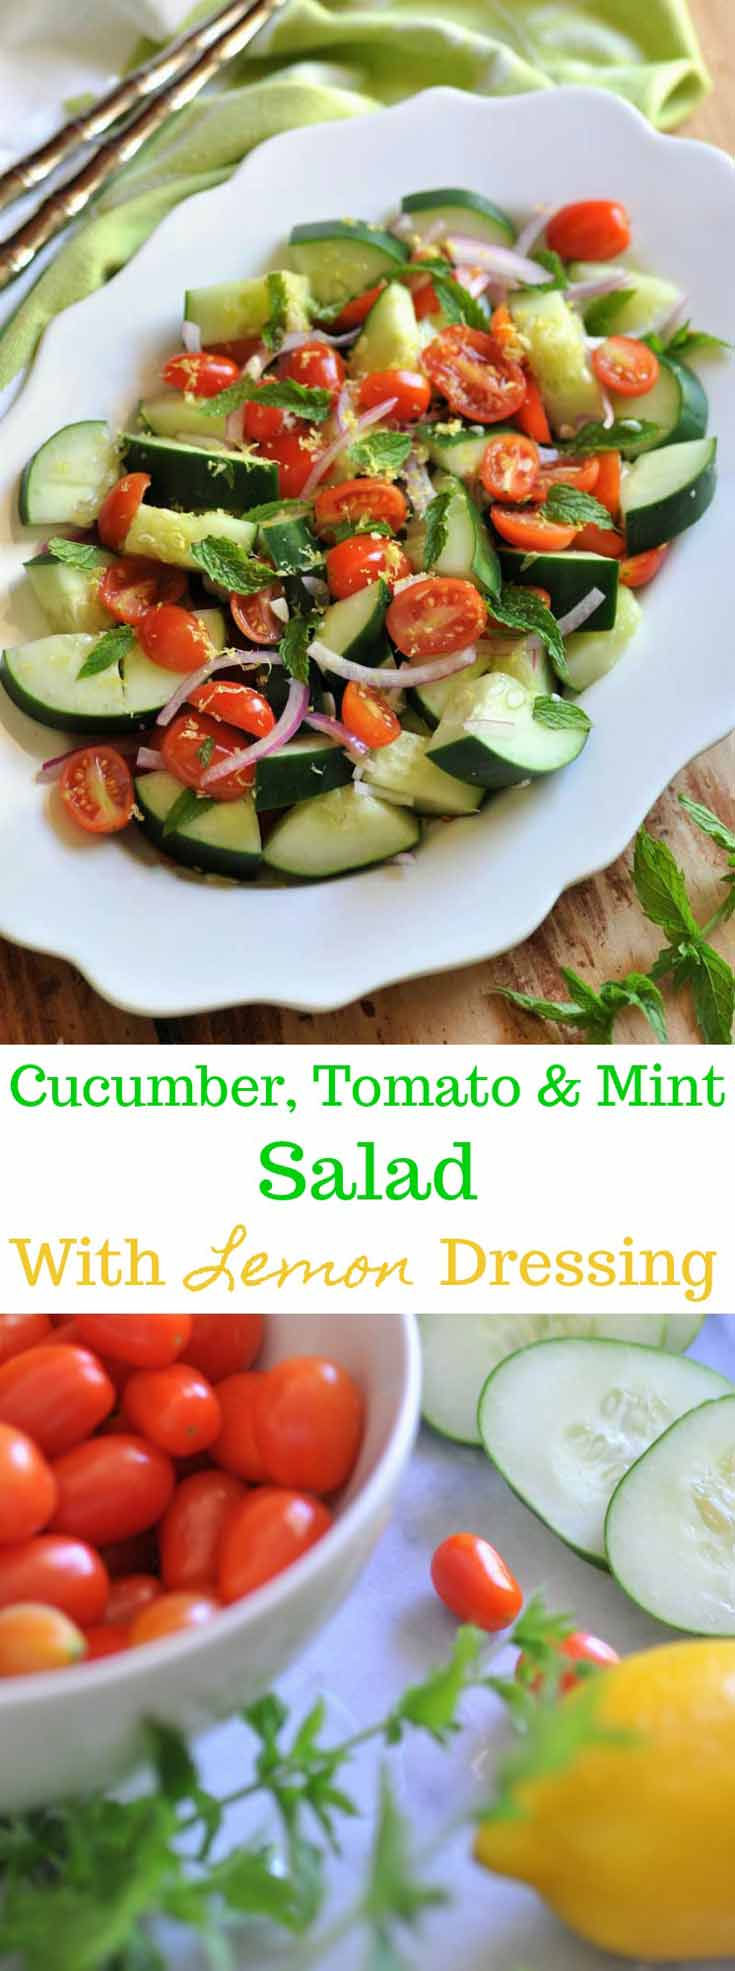 4 Ingredient Cucumber, Tomato & Mint Salad with Lemon Dressing! The perfect summer salad!